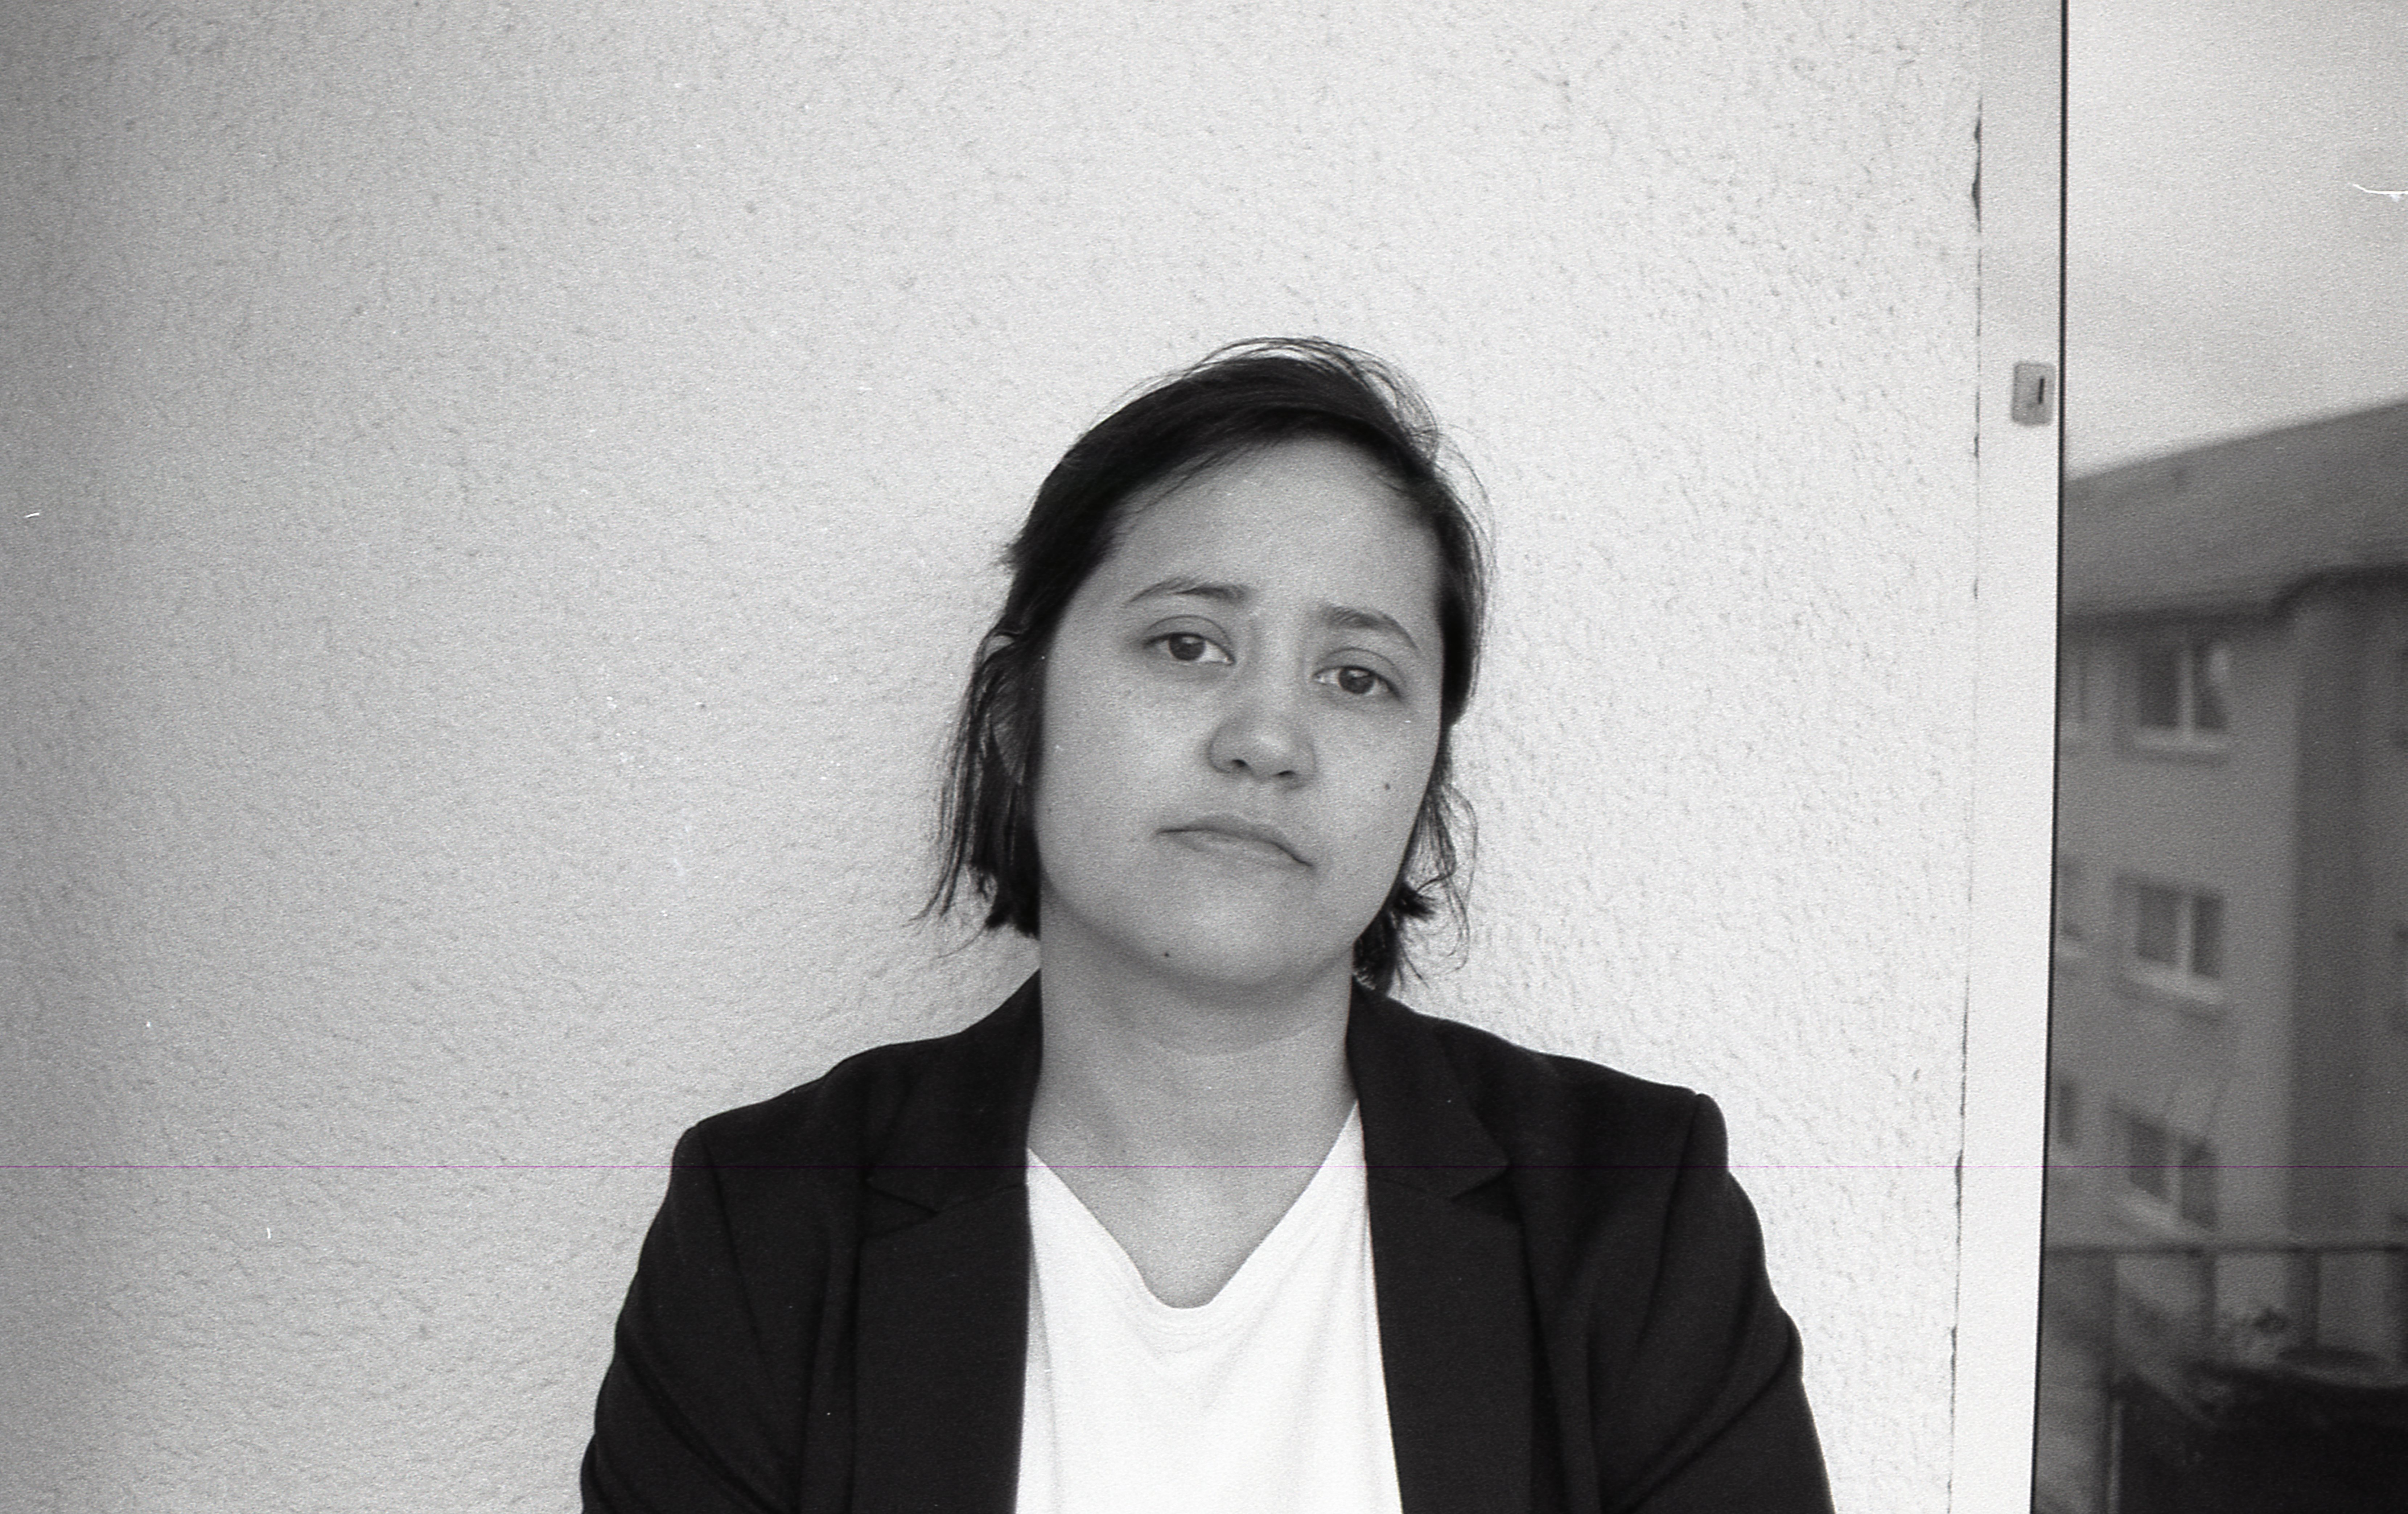 A self portrait of my on my balcony in a white shirt and a black blazer.